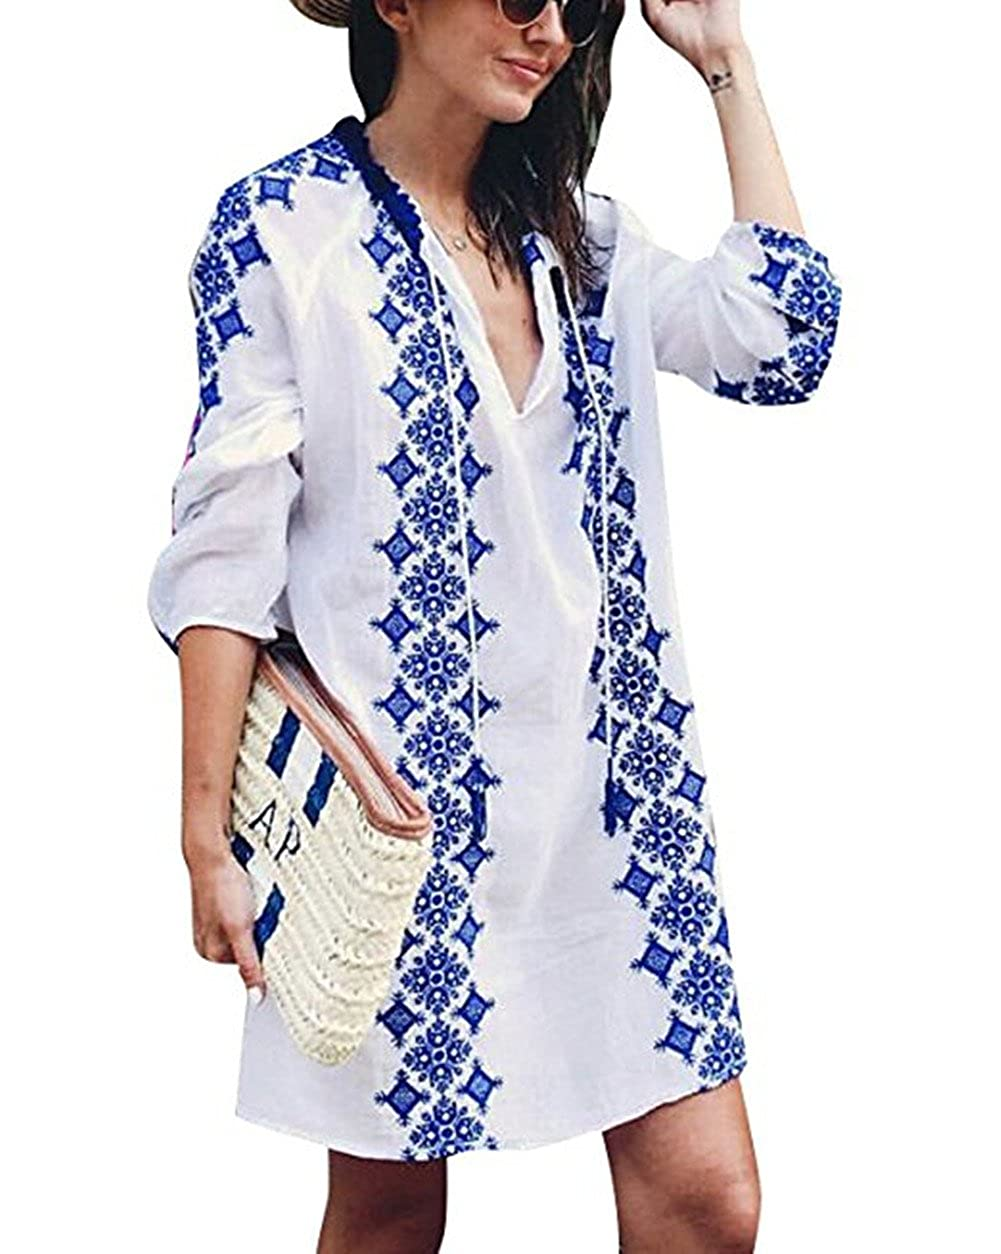 05e43b3754 Fashion Summer Beach Boho Dress Floral Print Swimsuit Cover Up suits for  Women, Ladies, Juniors and Teen girls. The white swim cover up is perfect  for ...